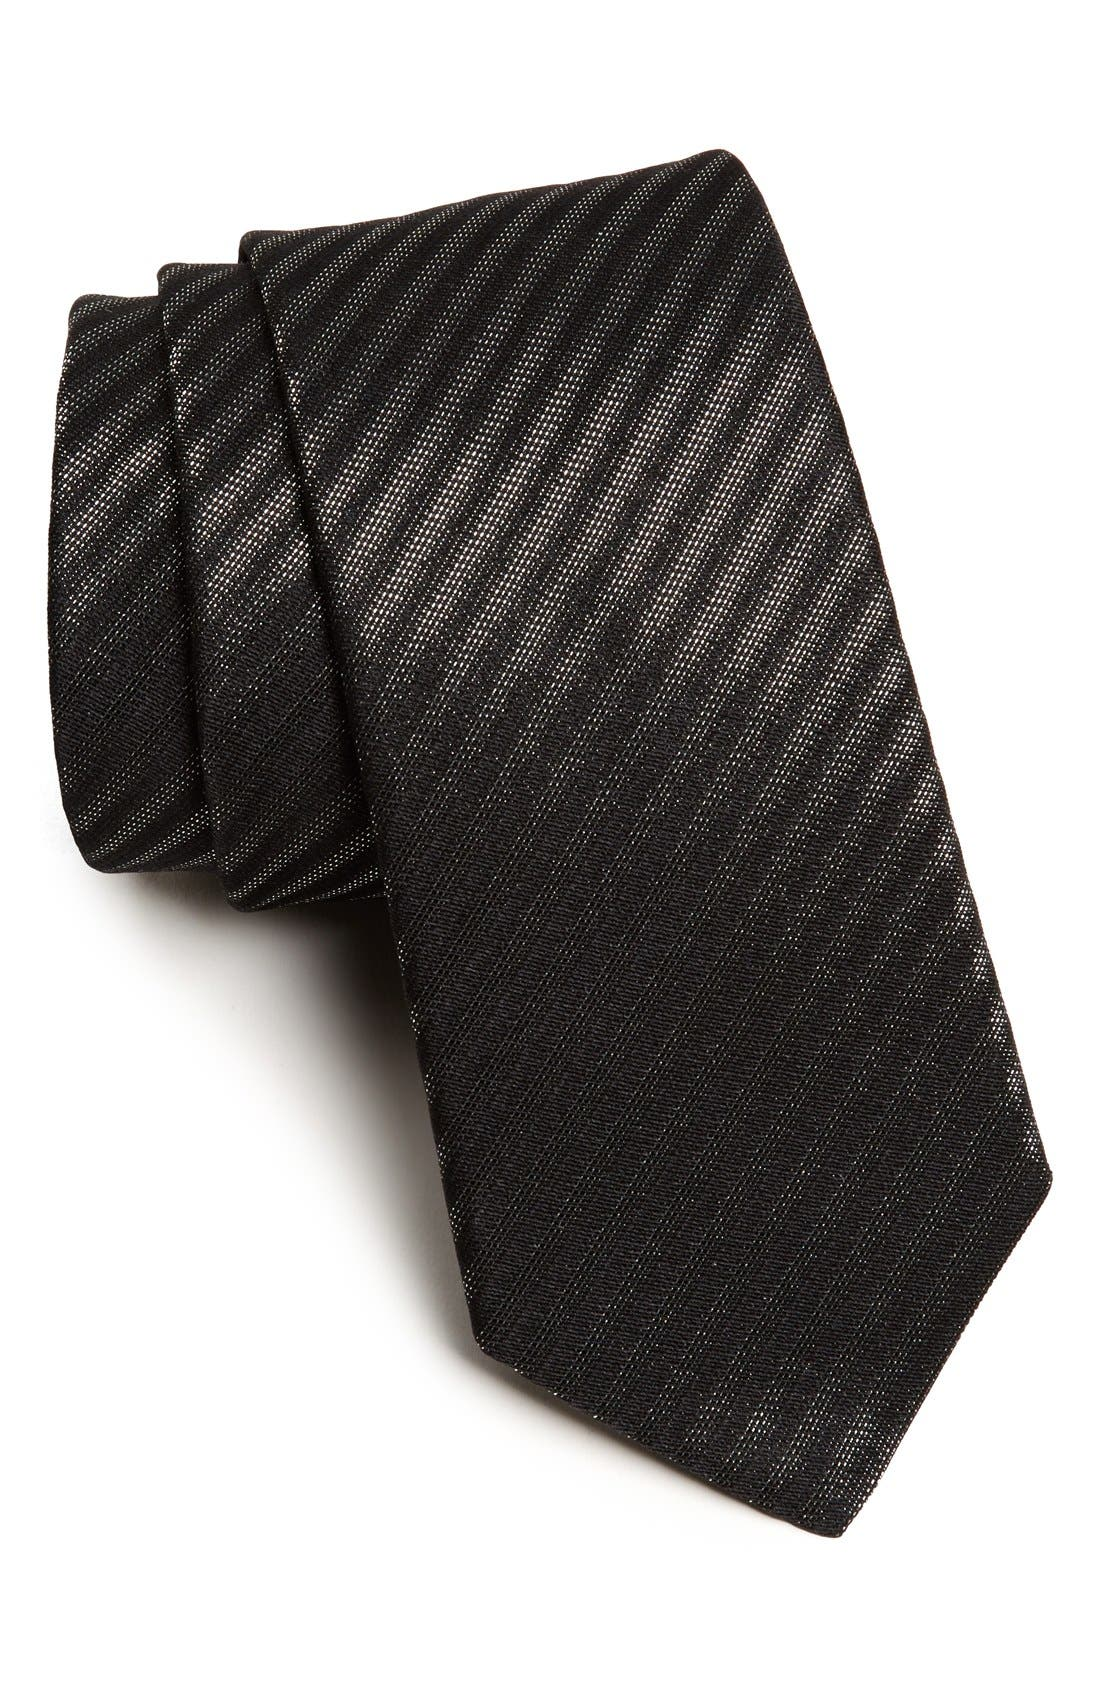 Main Image - Yves Saint Laurent Woven Silk Blend Tie